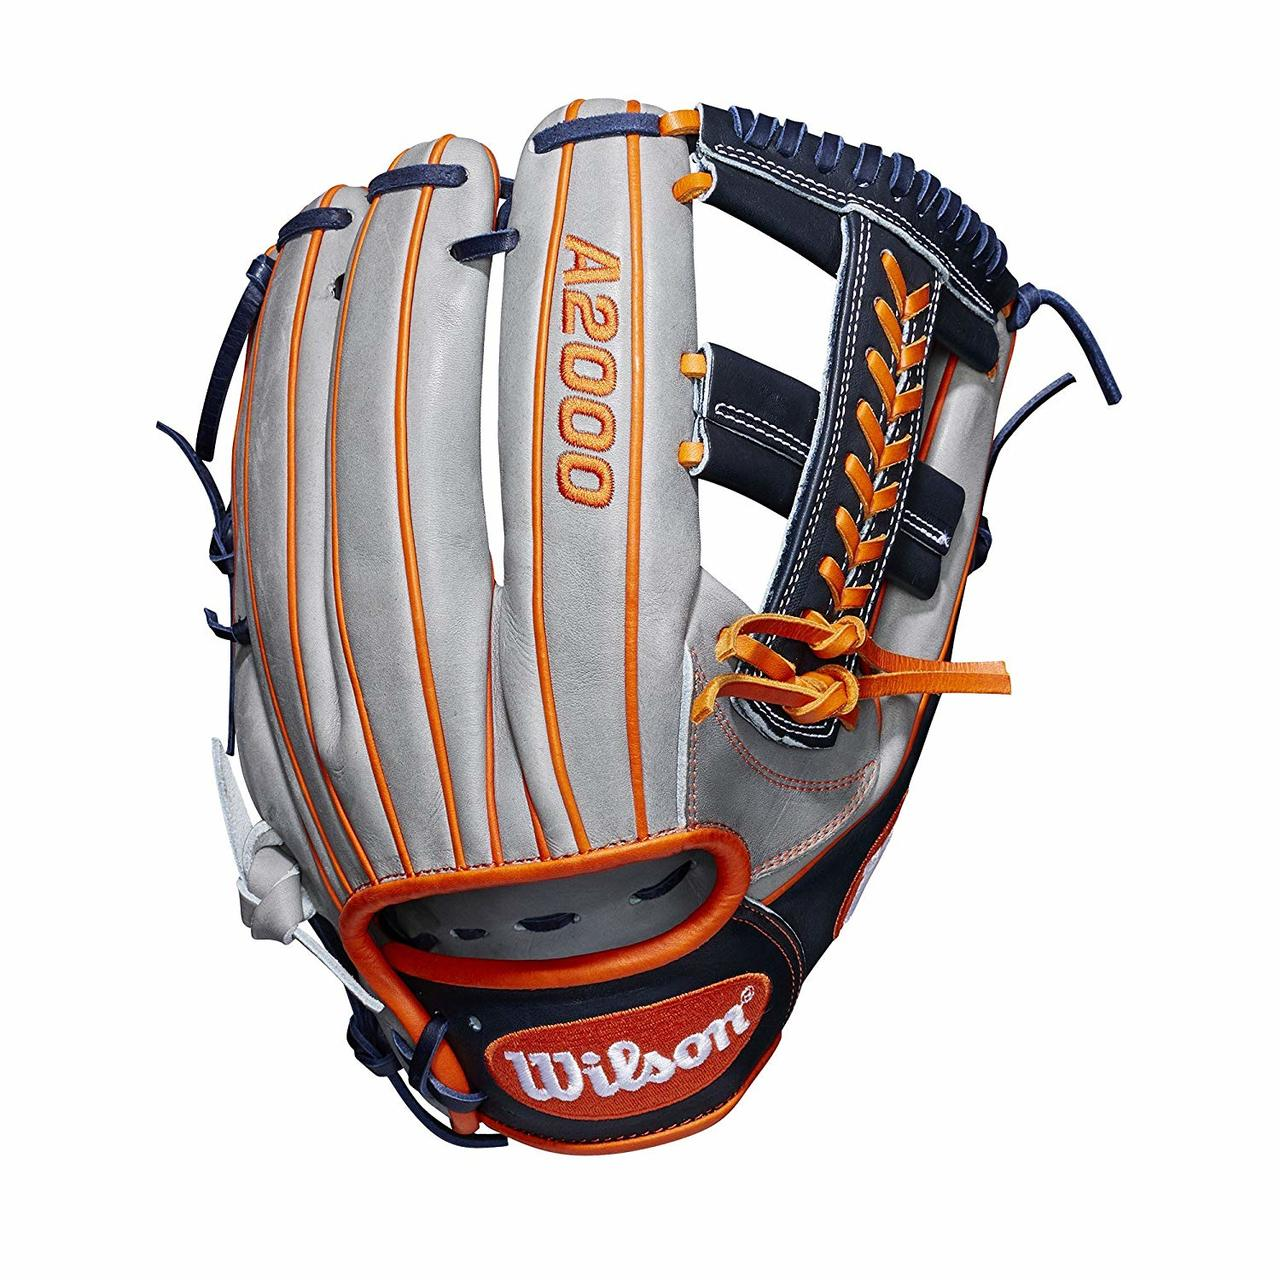 wilson-a2000-baseball-glove-2019-carlos-correa-game-11-75-right-hand-throw WTA20RB19CC1GM-RightHandThrow Wilson 887768732271 The Wilson A2000 Baseball Glove series has an unmatched feel durability